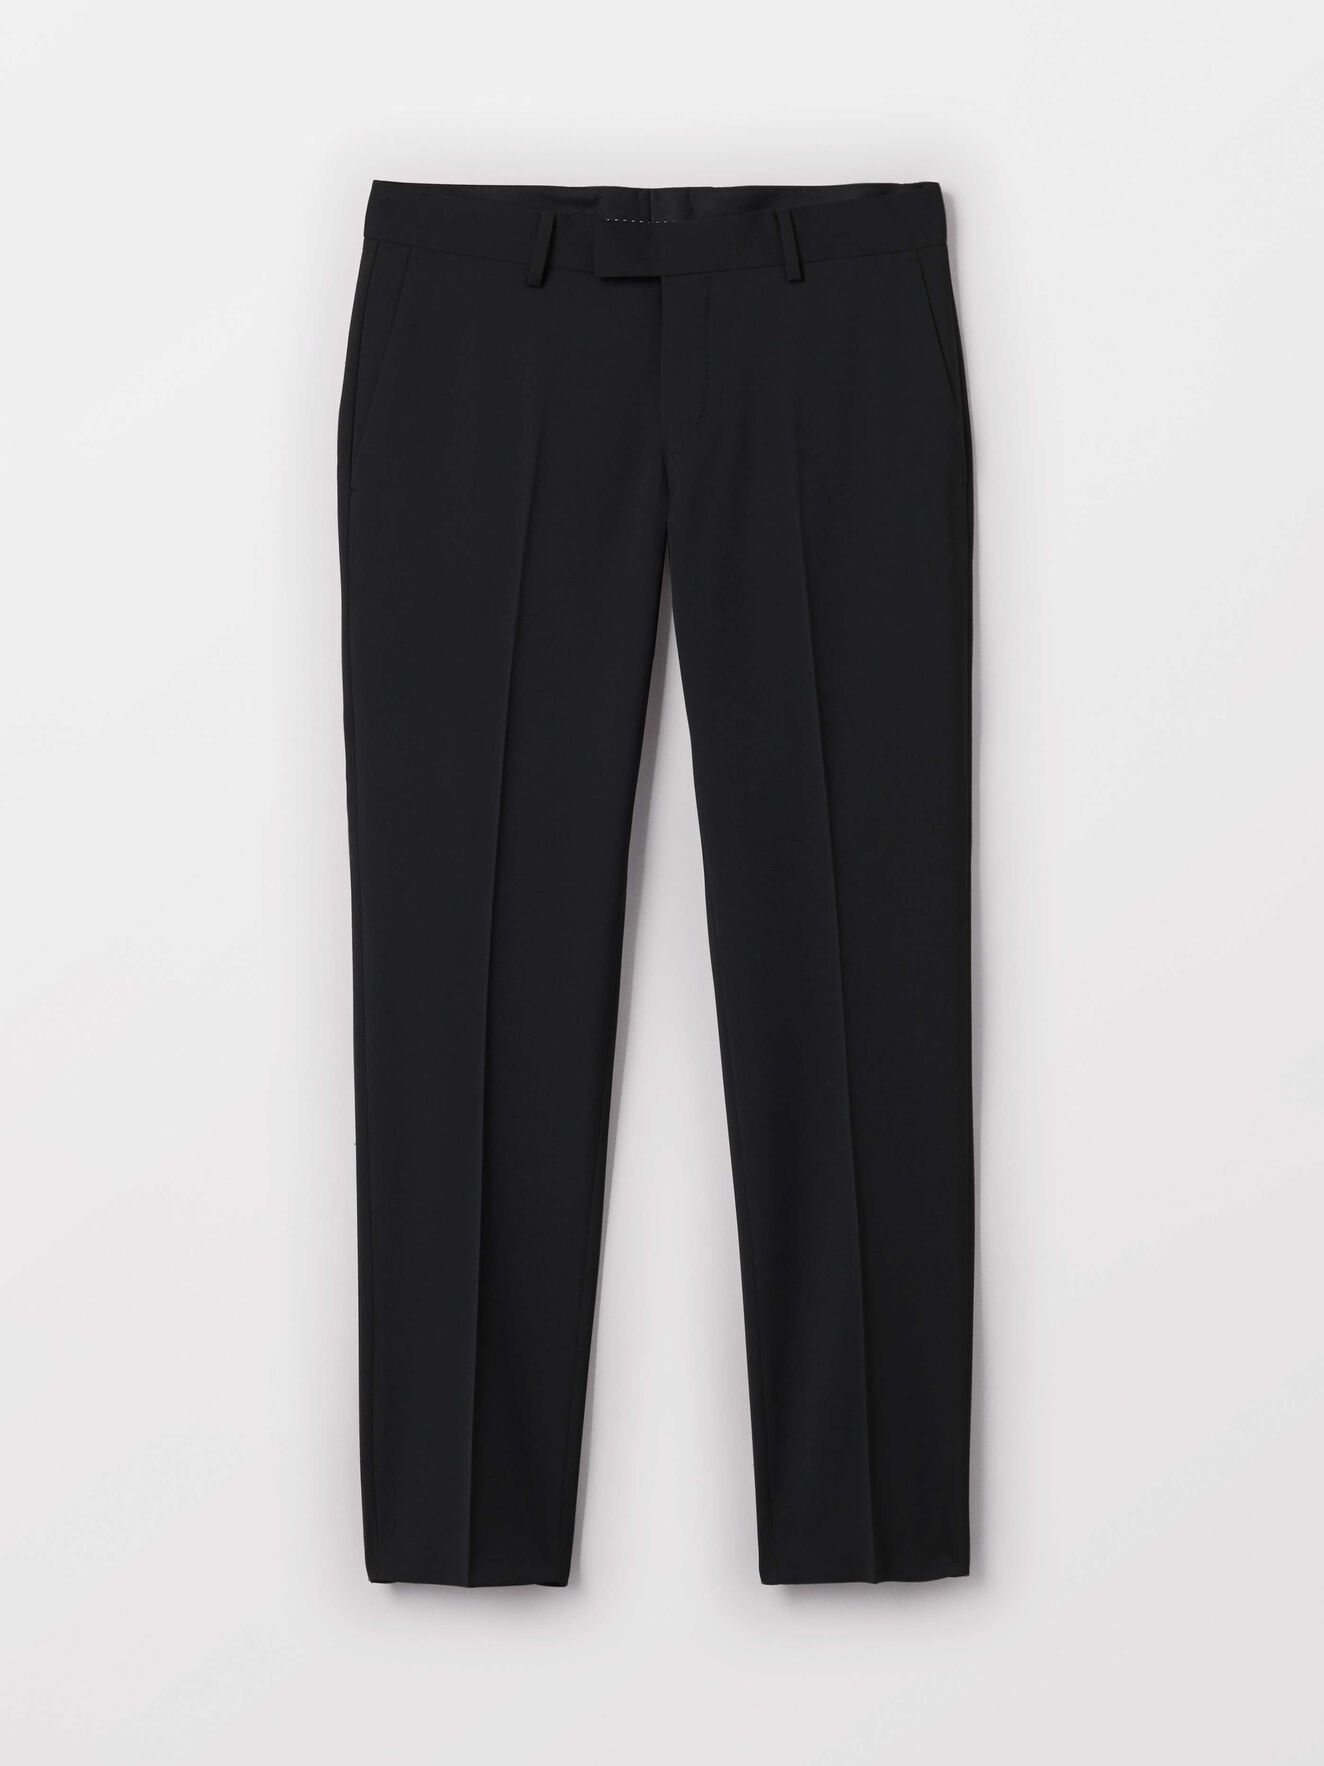 Tordon Trousers in Black from Tiger of Sweden